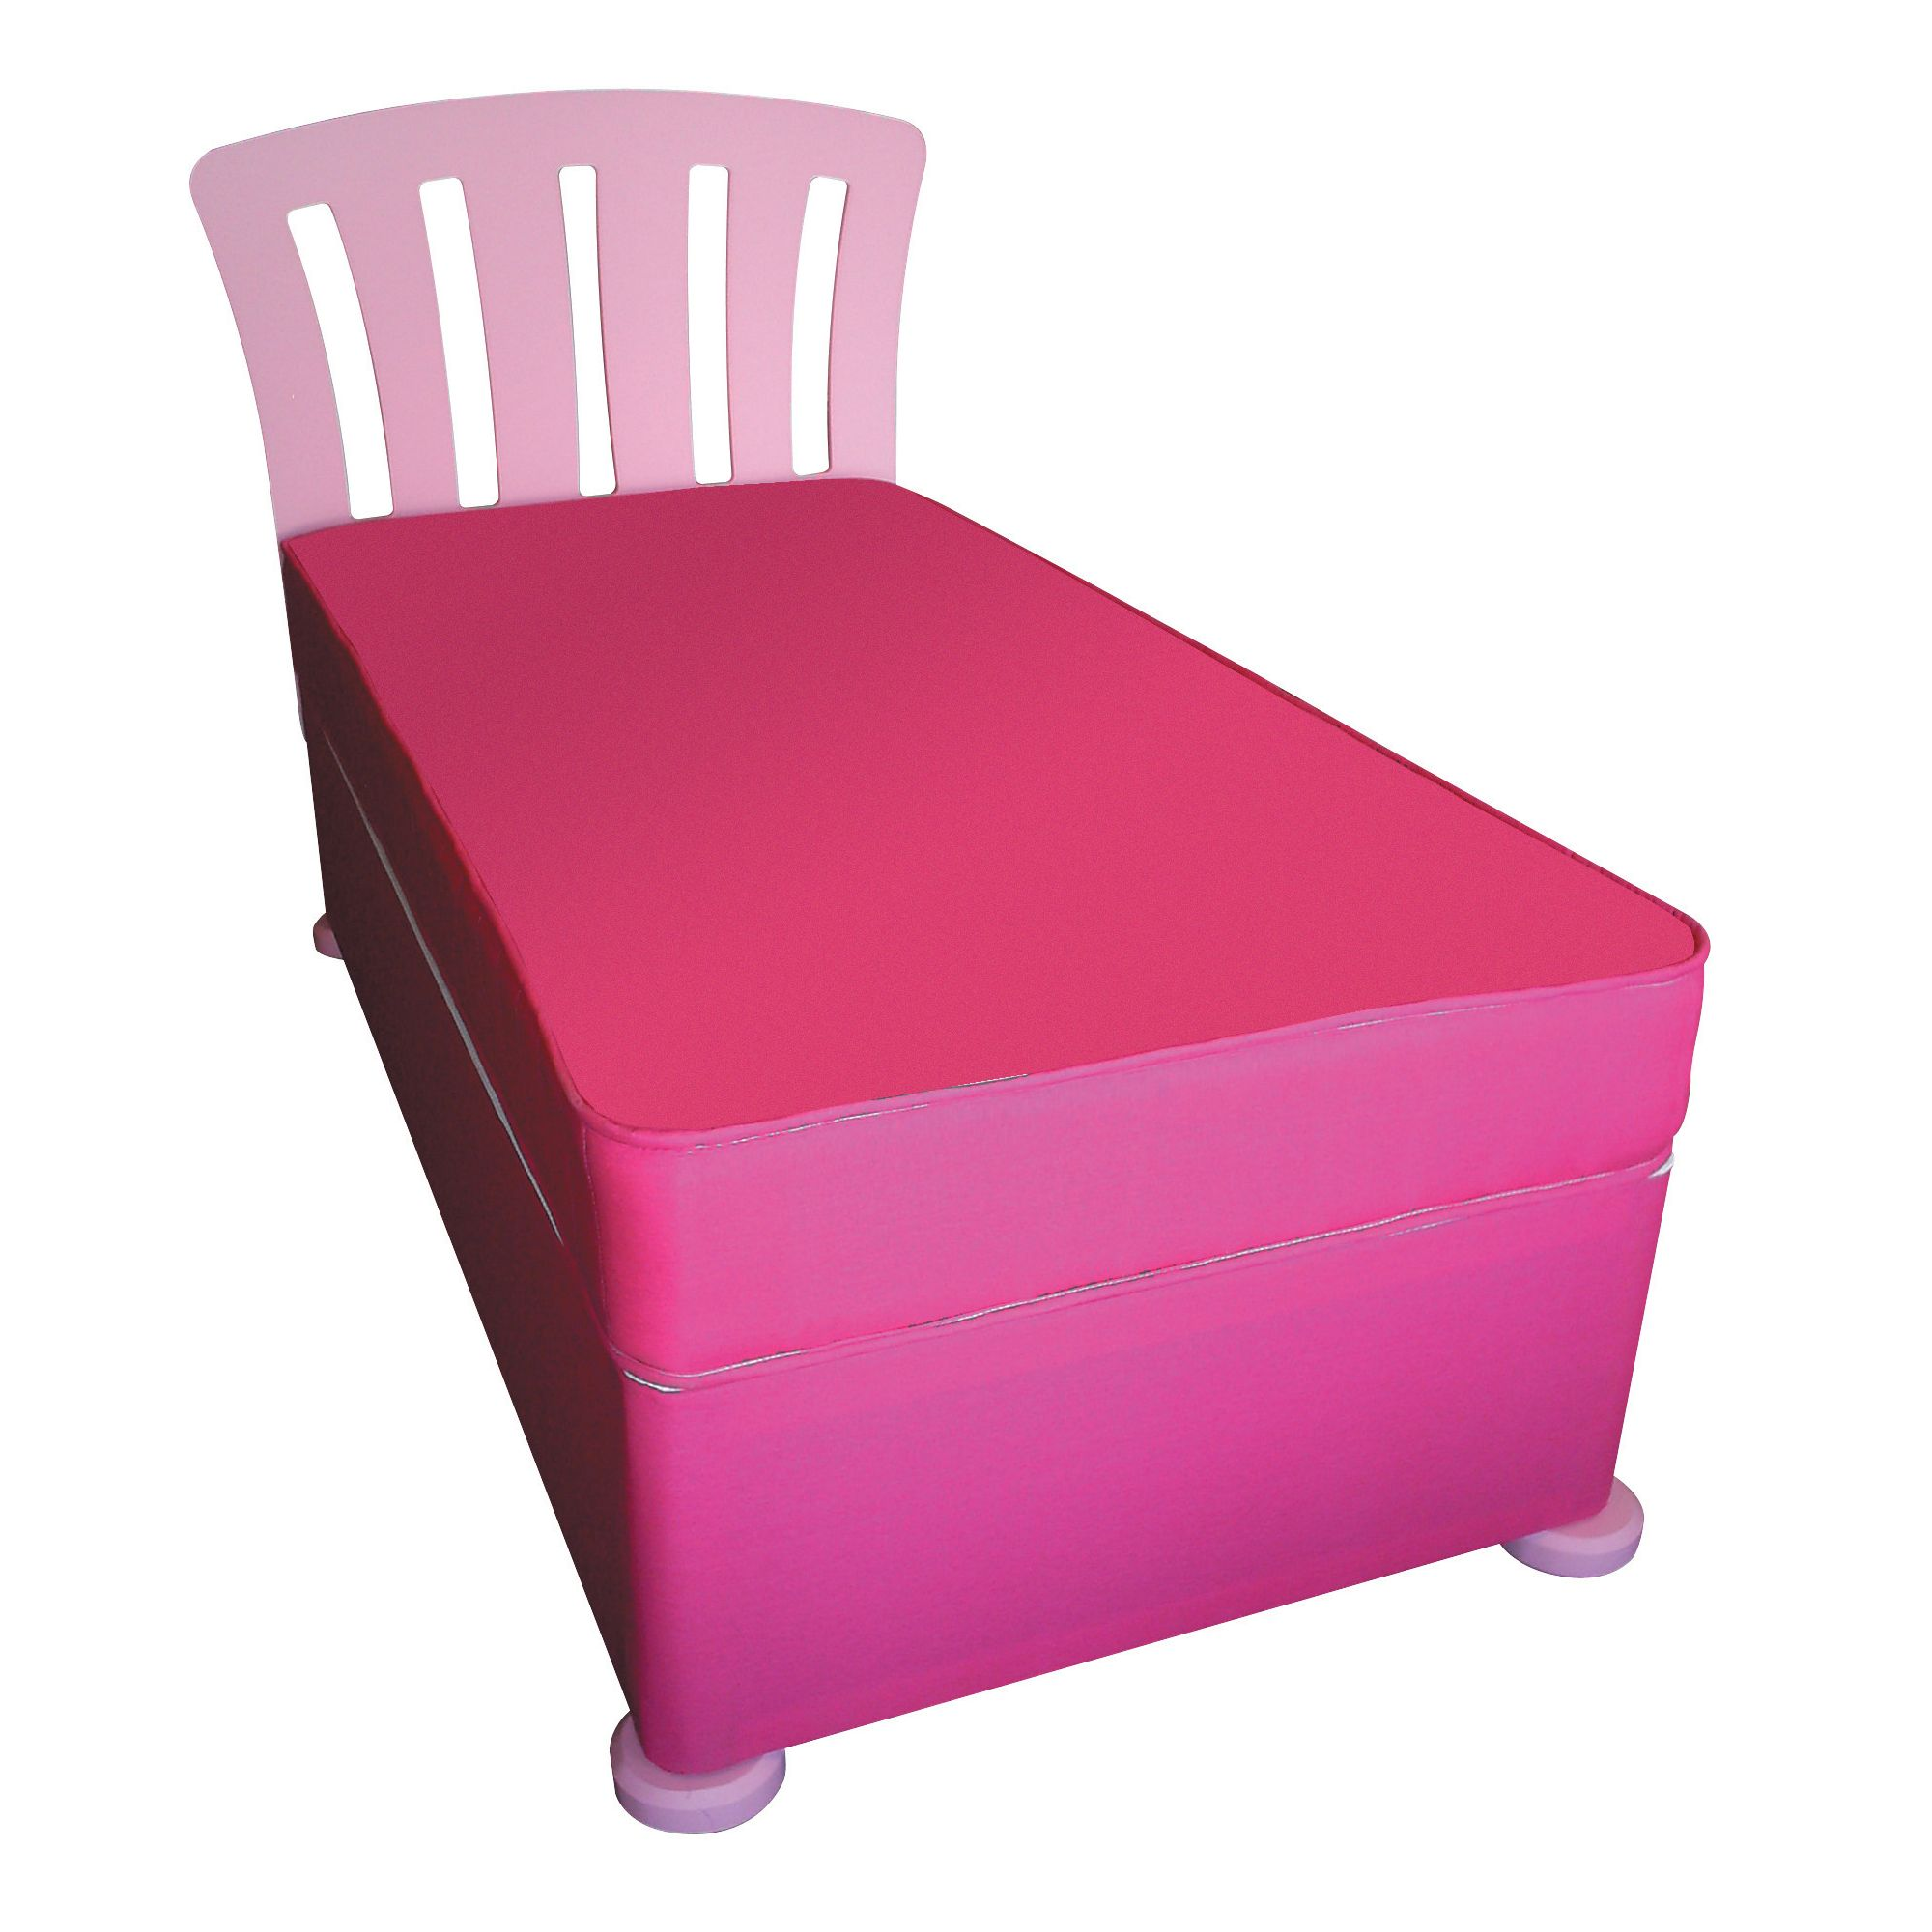 Kidsaw Single Divan with Mattress, Headboard and Bunfeet - Pink at Tesco Direct